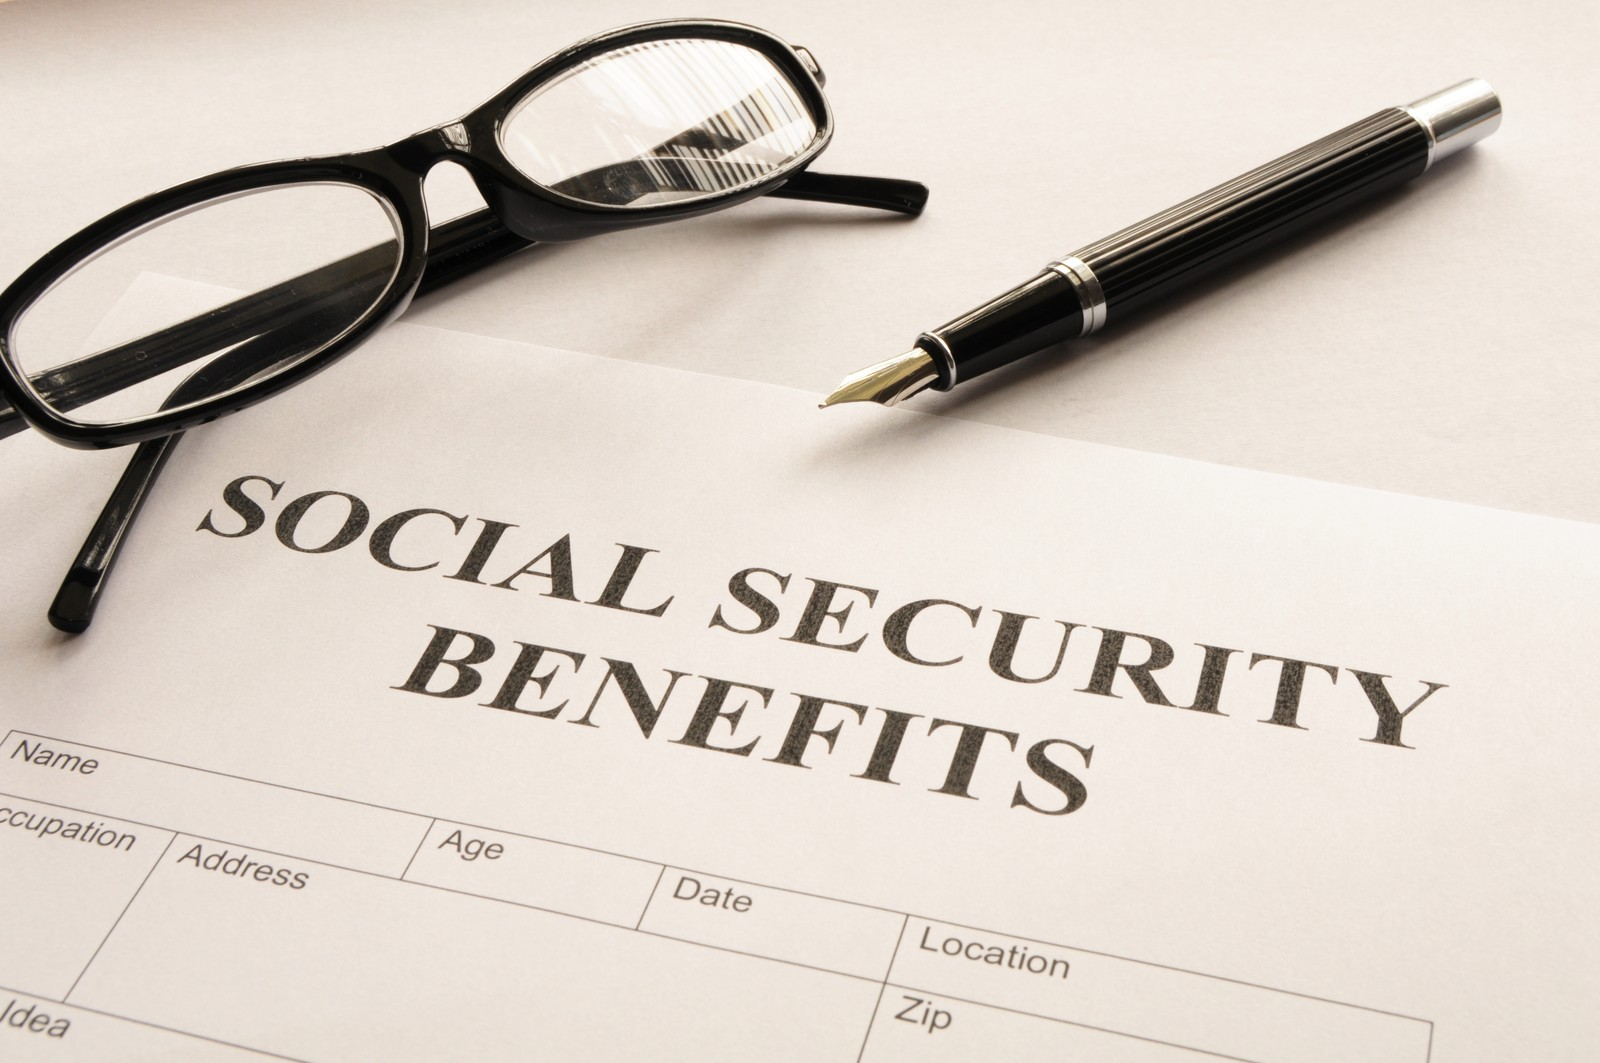 Don't be a Victim of Social Security Scams-Social Security Benefits paperwork with a black pen and reading glasses laying near the paperwork